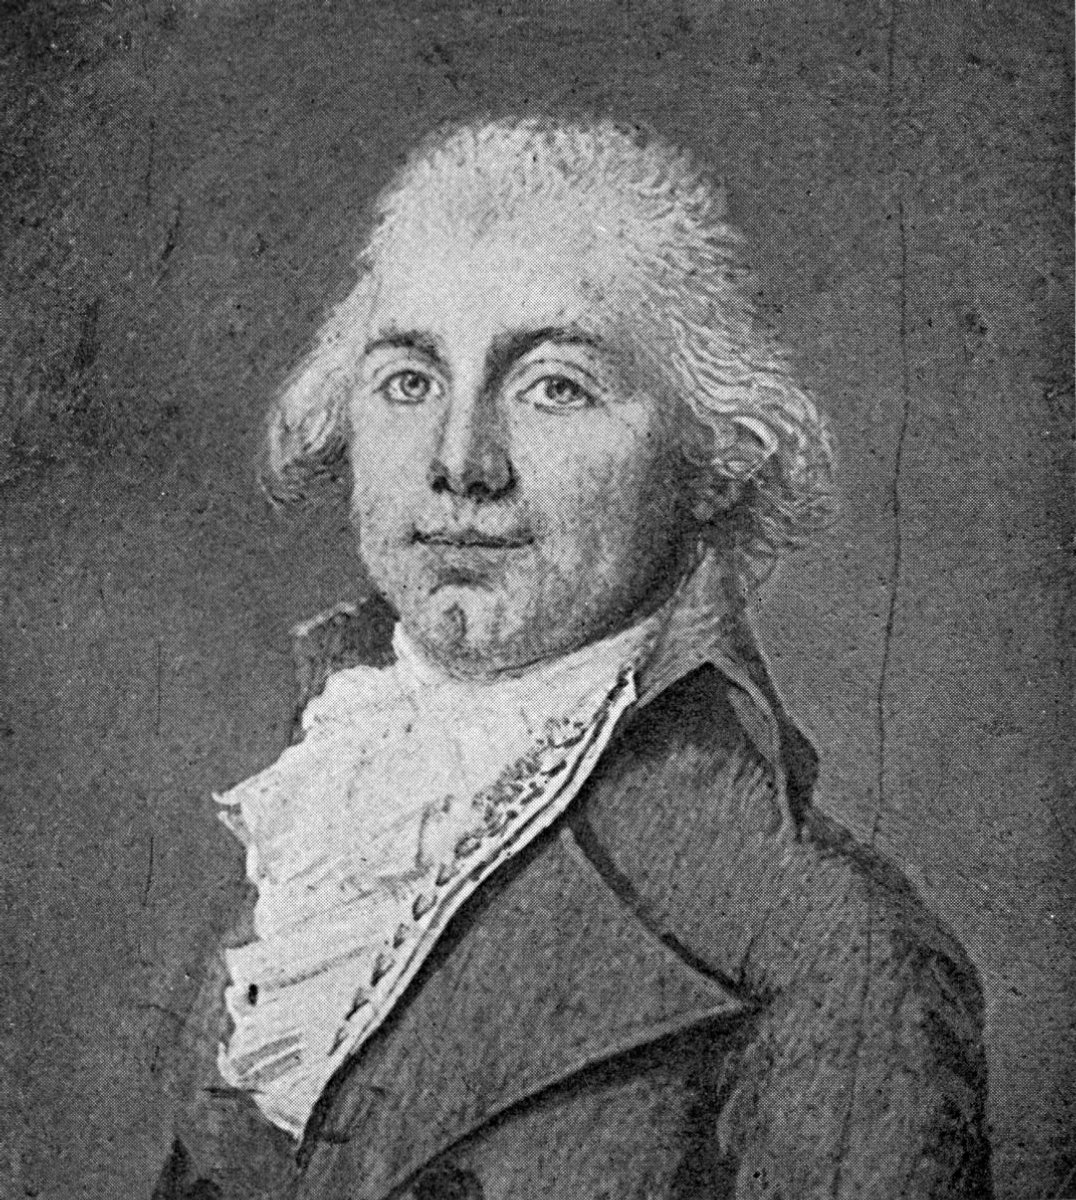 1794 portrait of James Monroe by Louis Semé